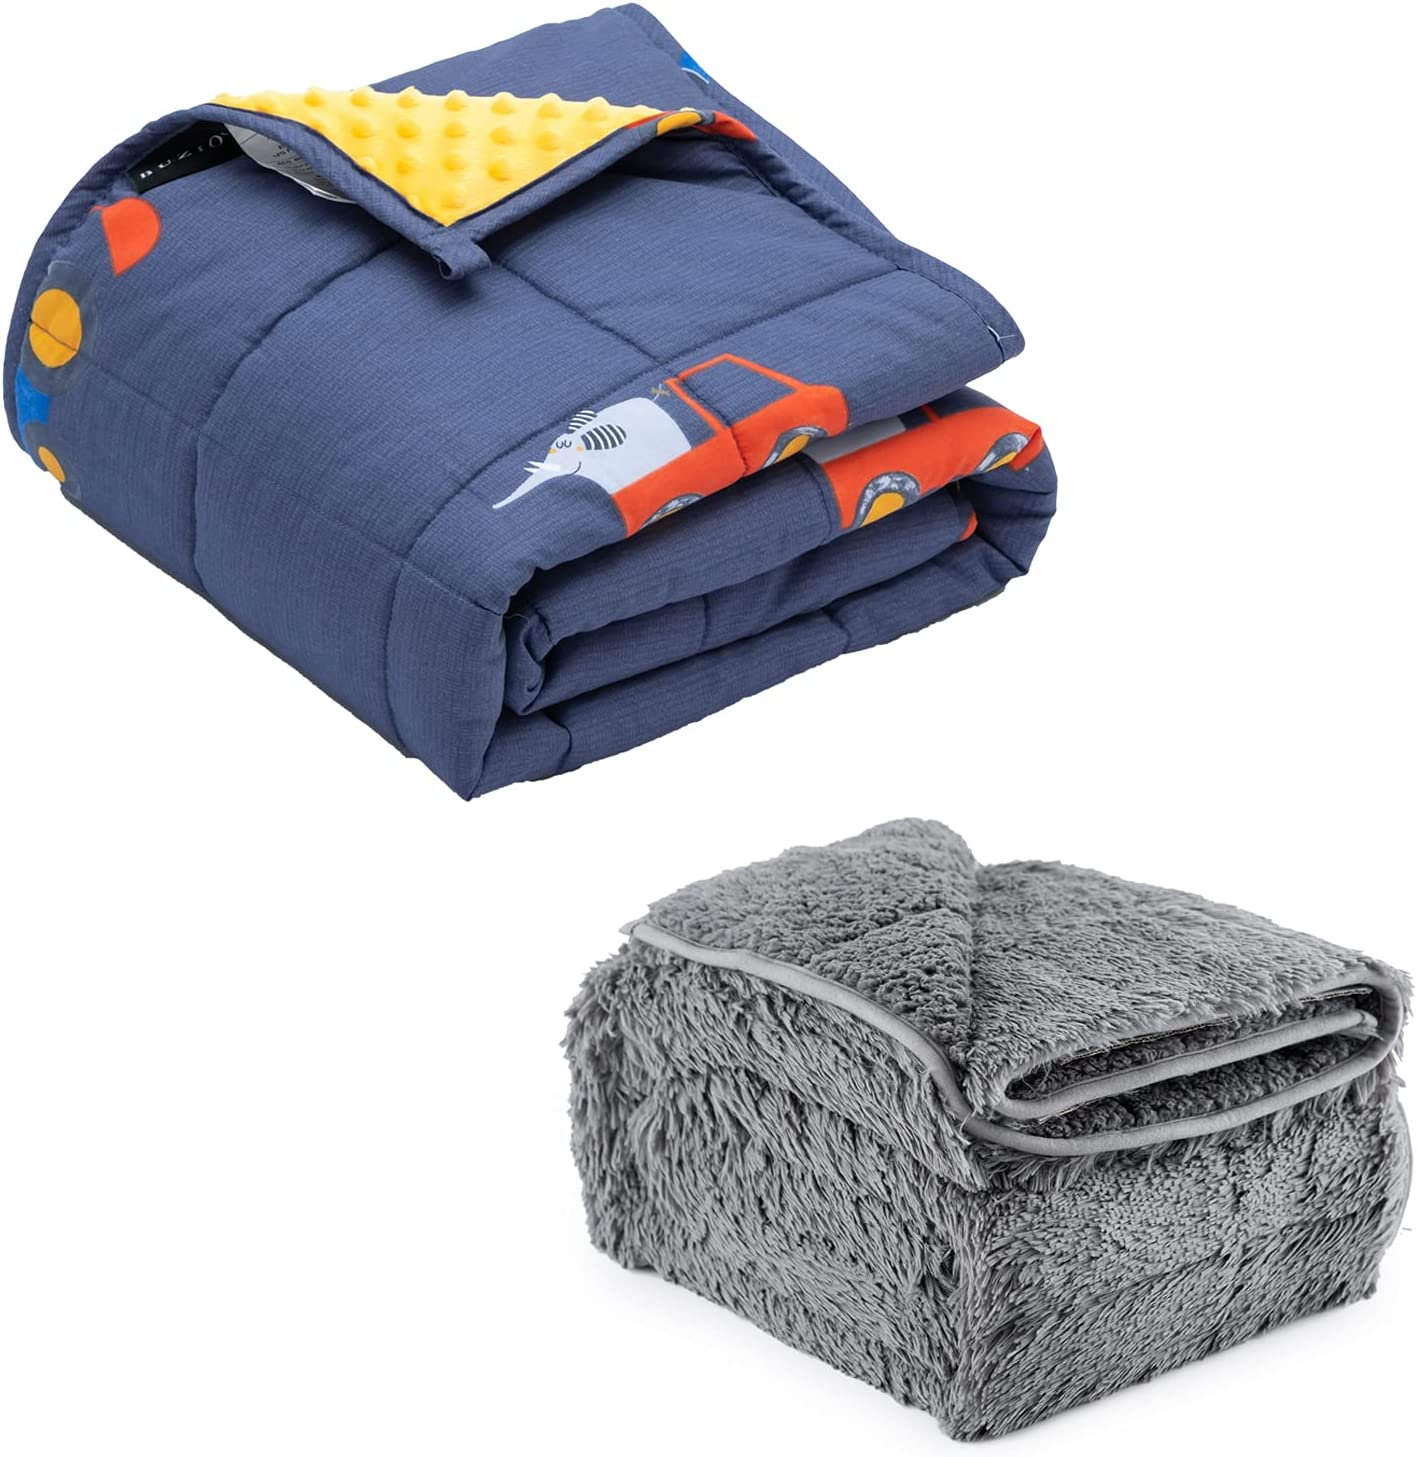 Max 71% OFF Weighted Blanket 3 At the price lbs for Kids Cot Ultra and Minky Cozy Fleece